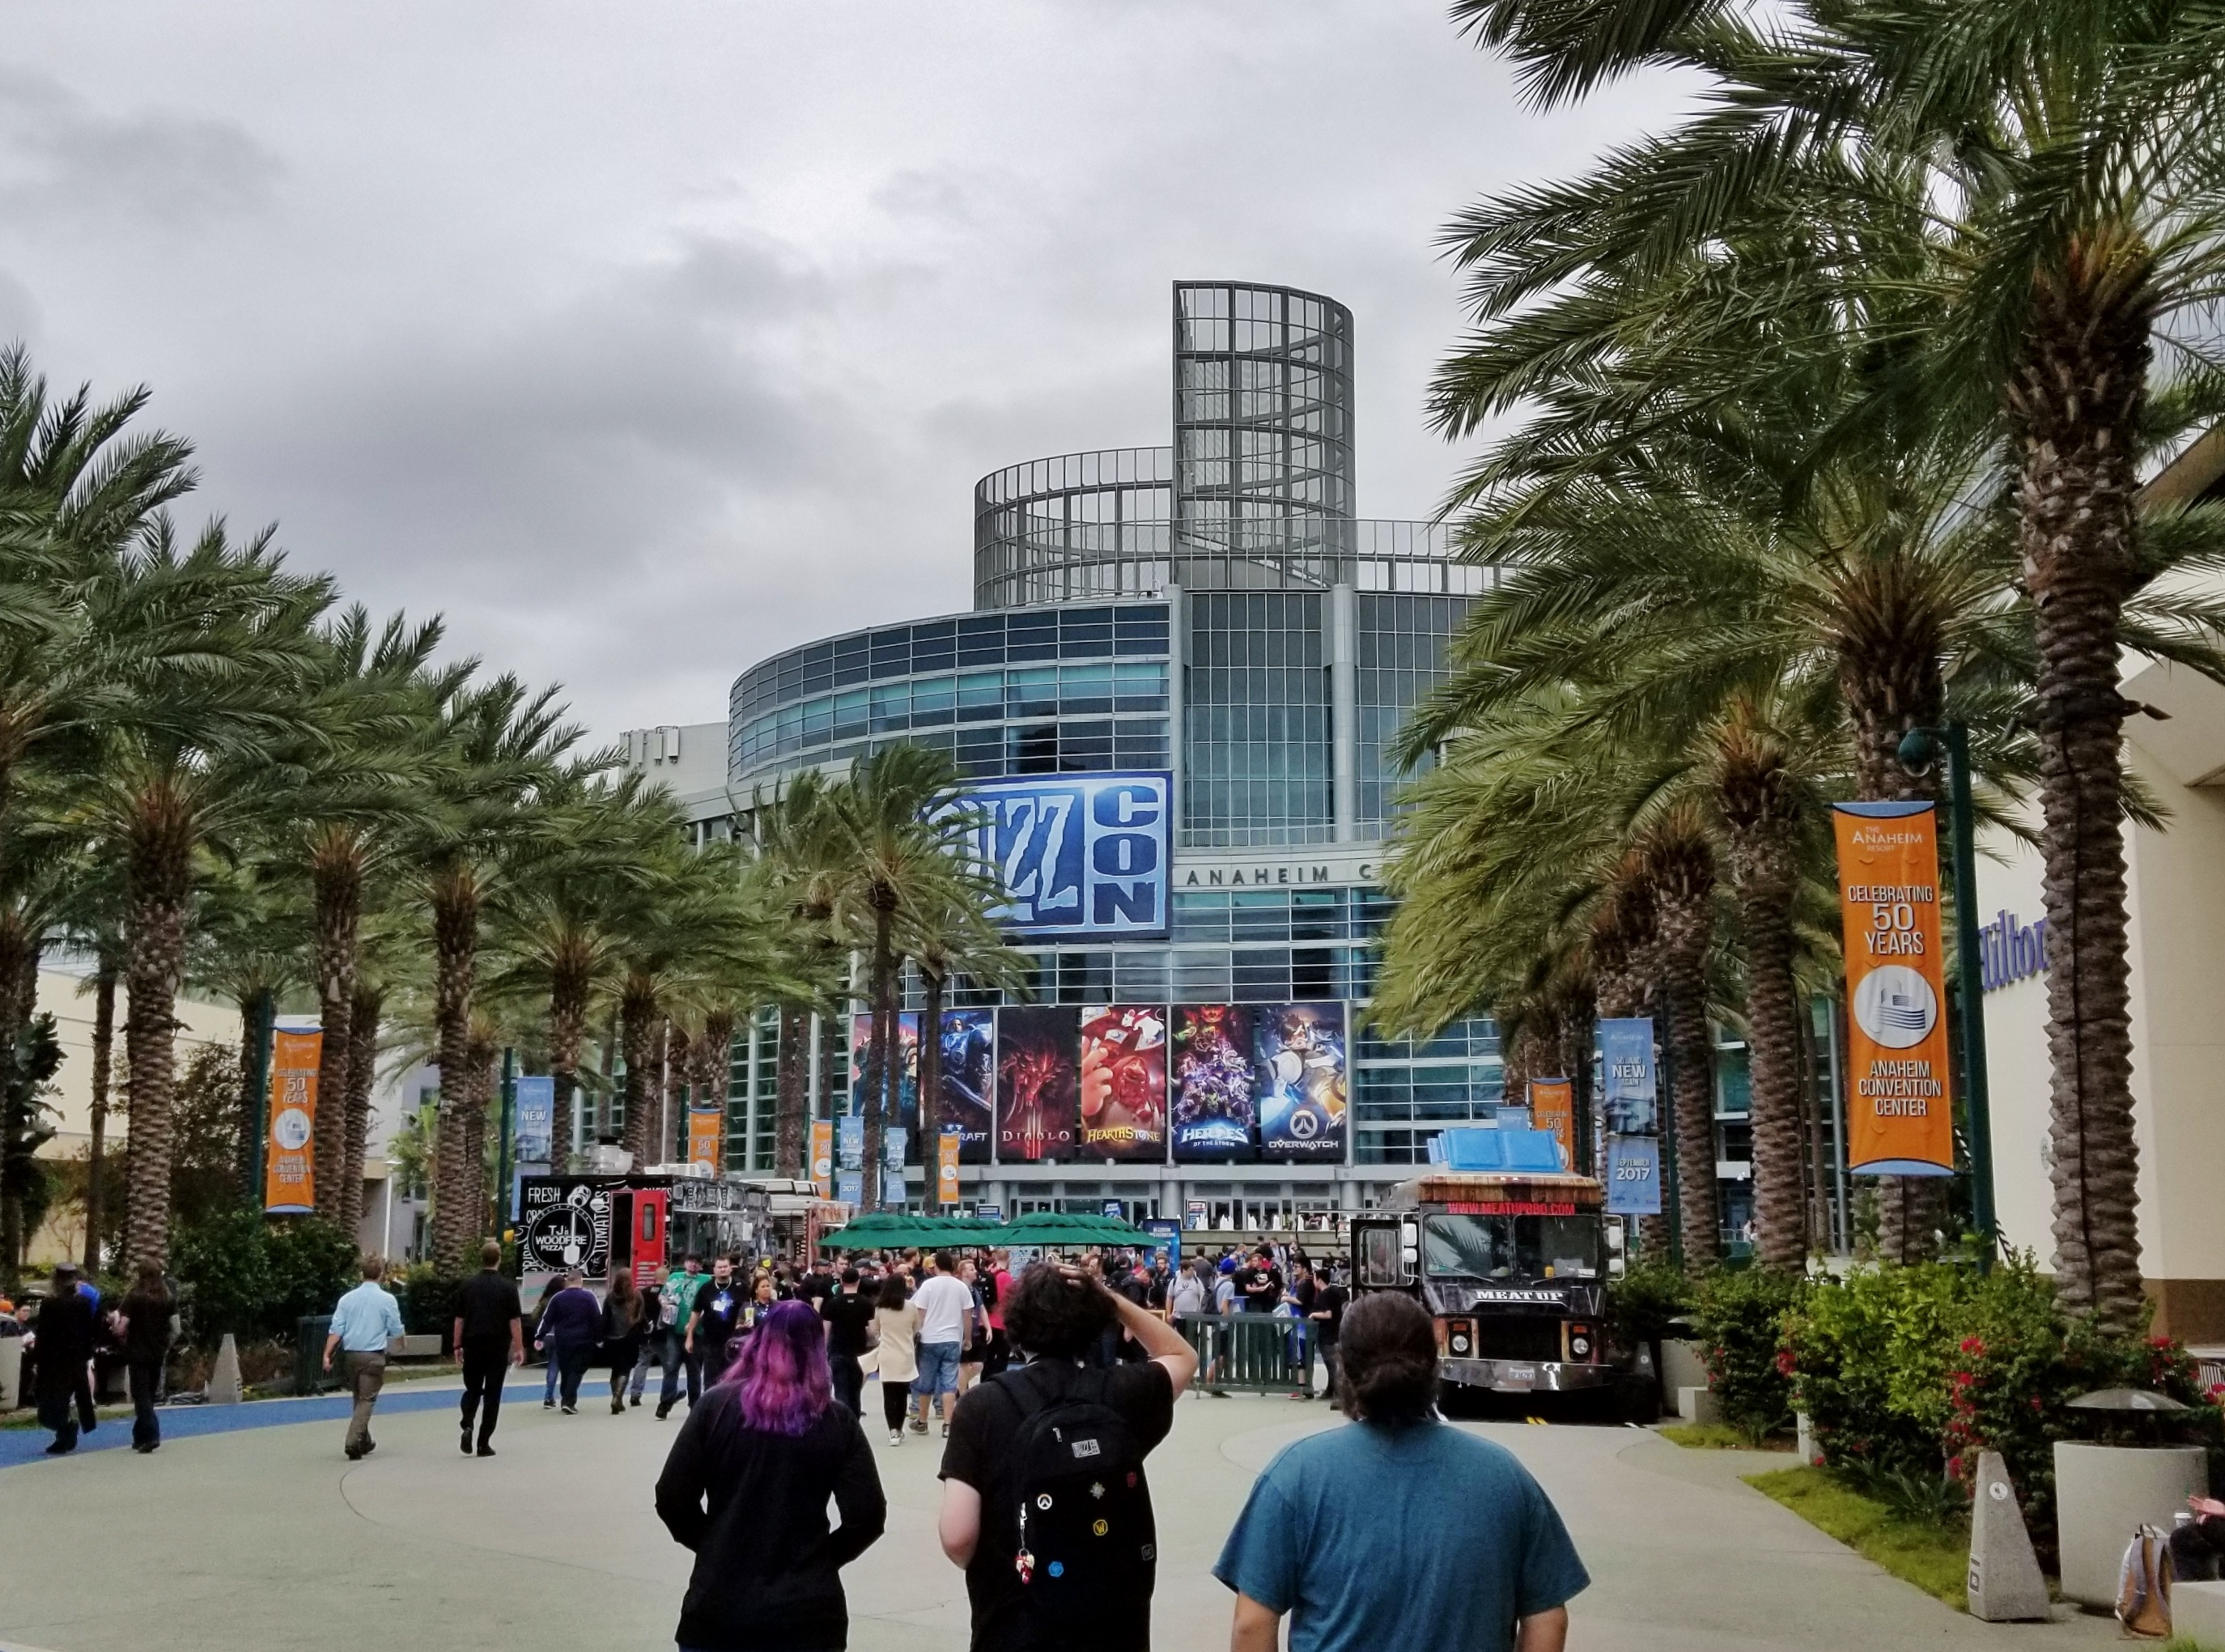 Anaheim_Convention_Center_BlizzCon